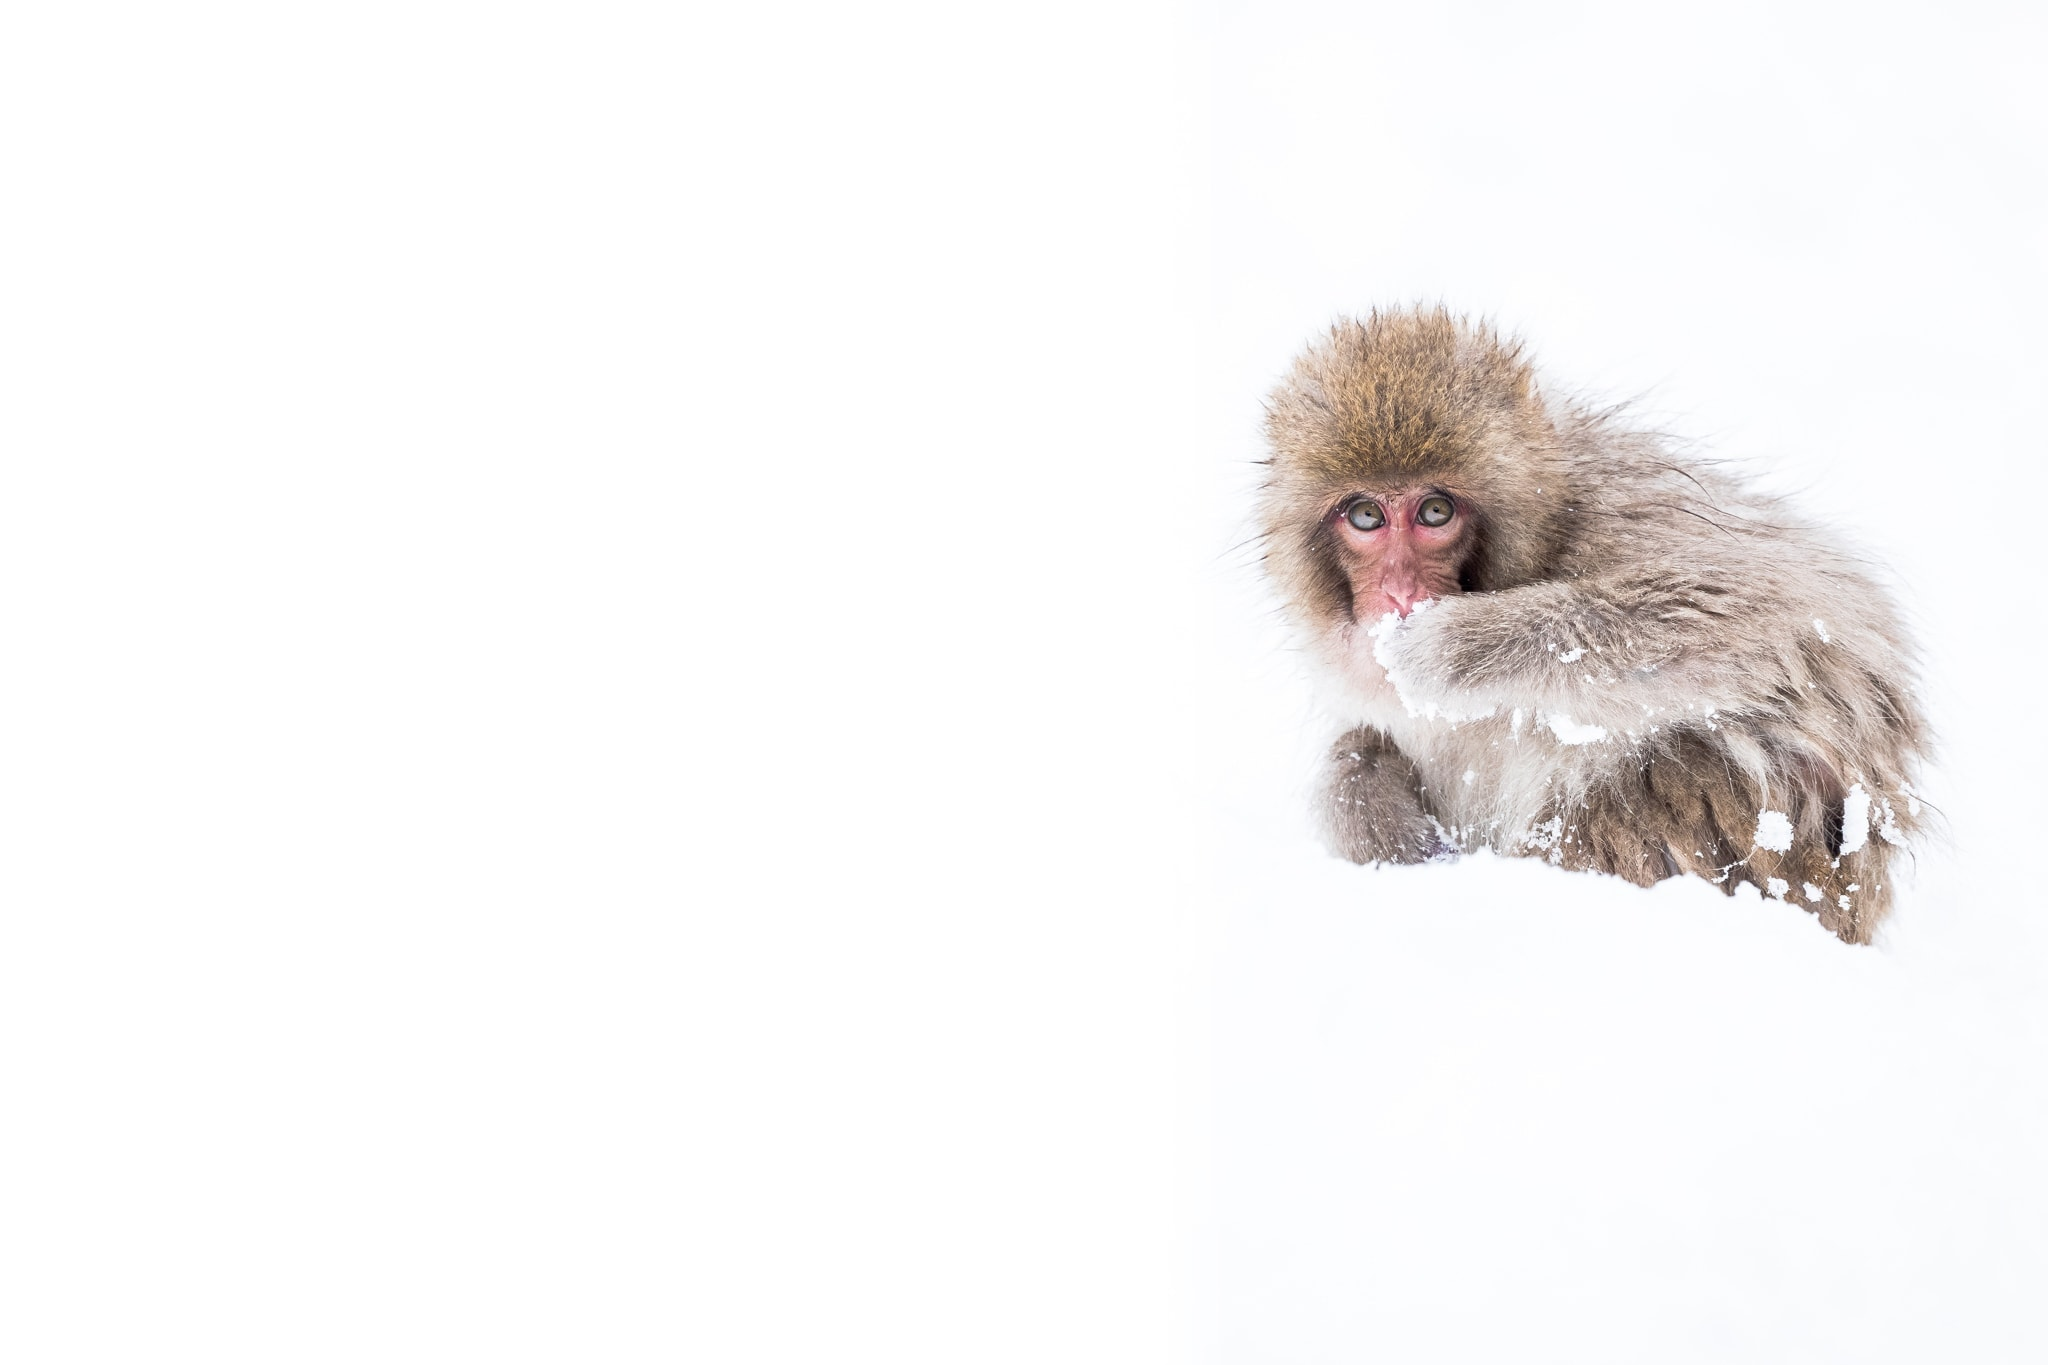 One of the Young Snow Monkeys of the Jigokudani Valley Photographed During the Natureslens Winter Wildlife of Japan Photography Holiday